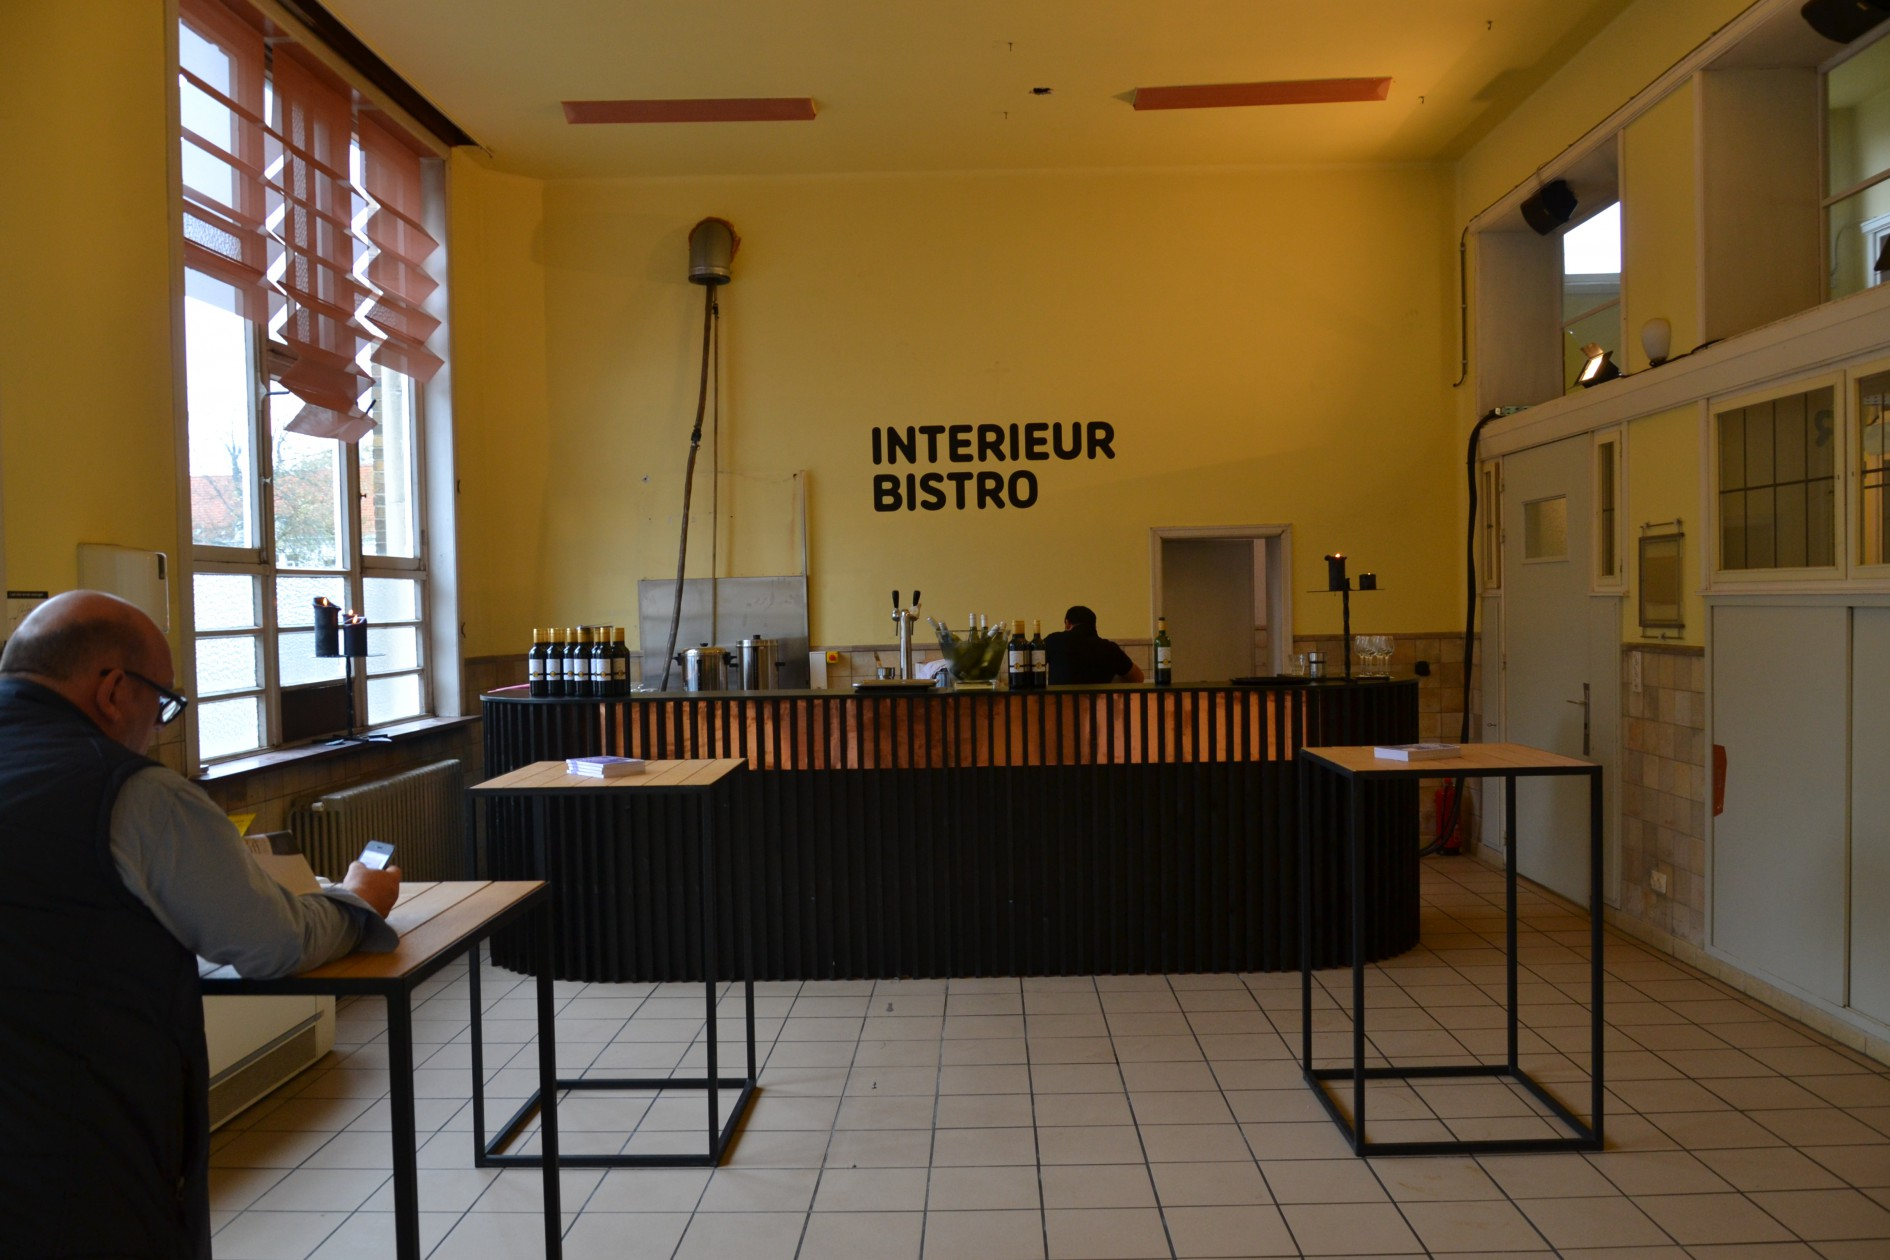 the gentle curves and graphic lines of the bar of the interieur bistro